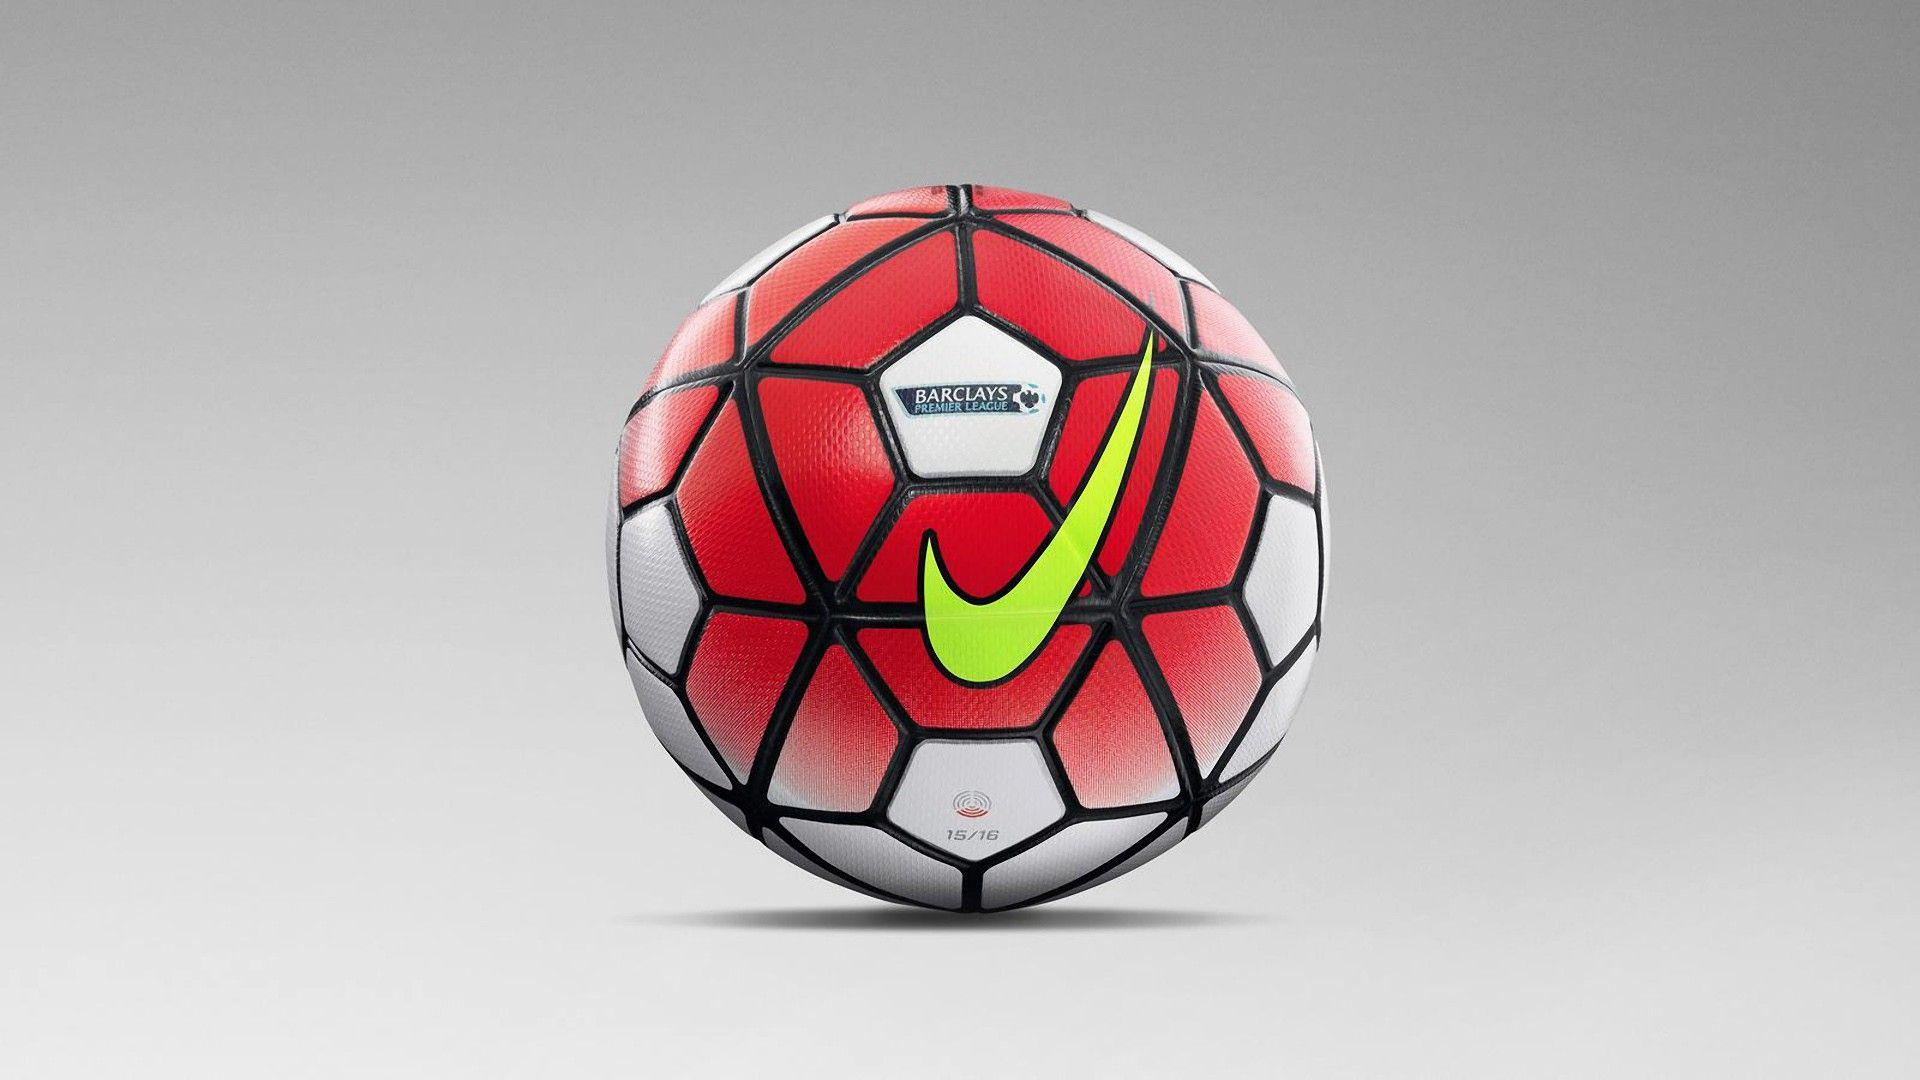 Nike Ordem 3 Barclays Premier League 2015-2016 Ball Wallpaper free . b9e5deb4b